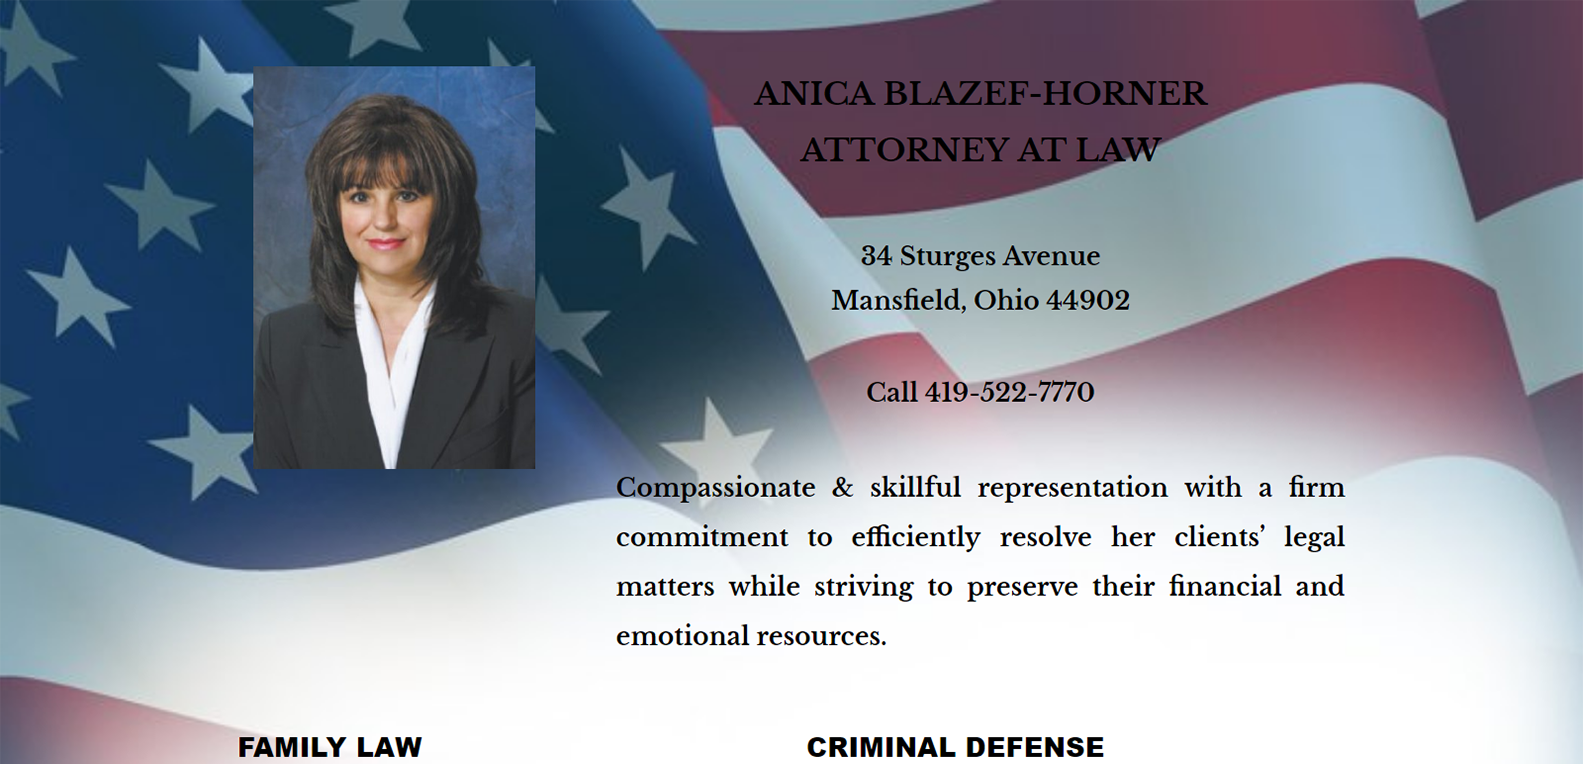 Blazef-Horner Attorney at Law